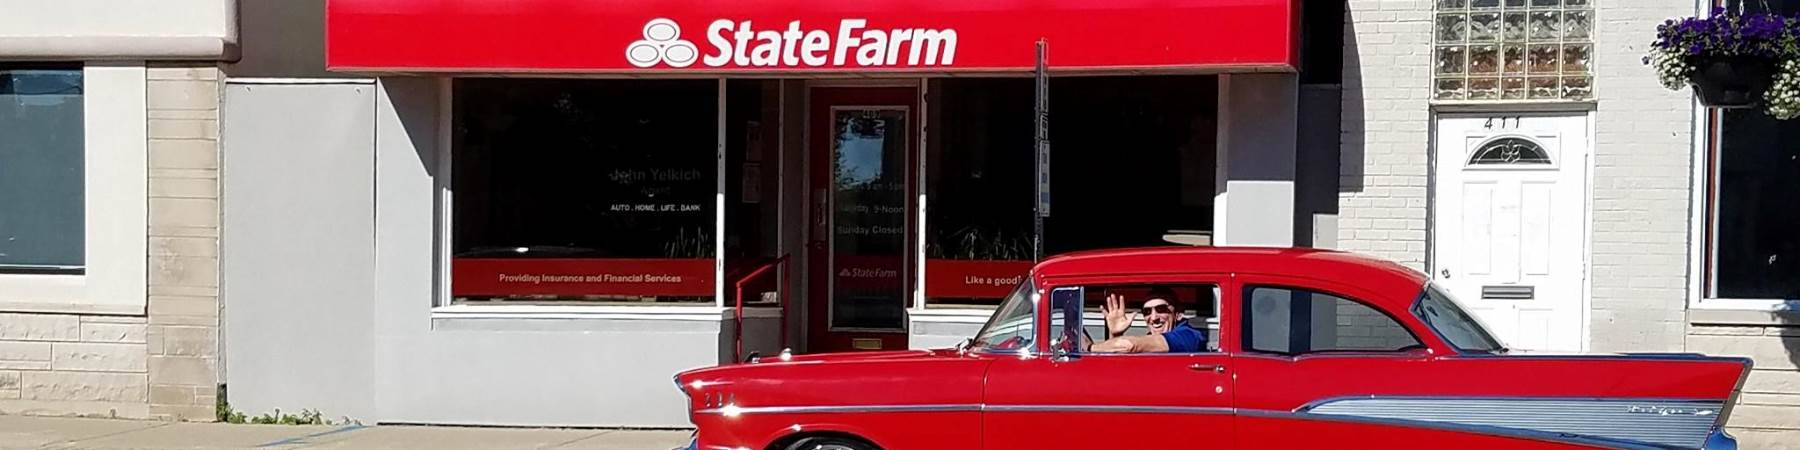 John Yelkich State Farm Insurance, (219) 963-6347 – Offering Home, Life, Auto Insurance and more!